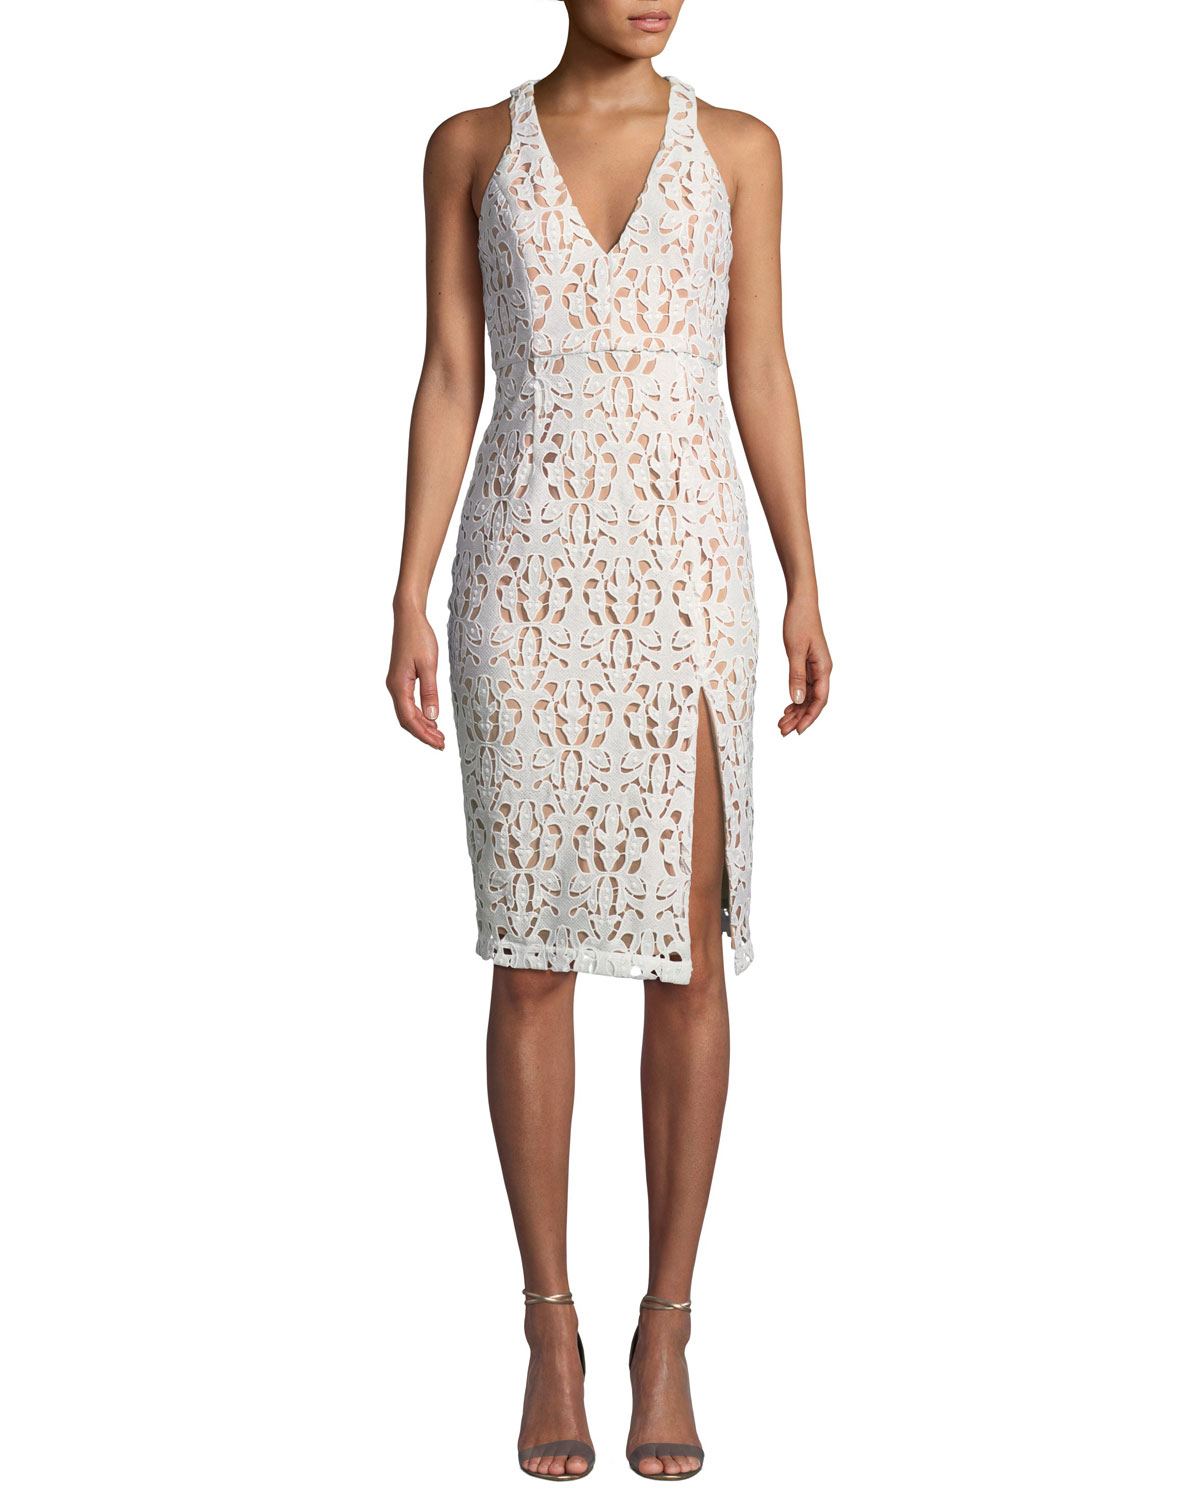 Aijek Womens Eyelet Halter Dress